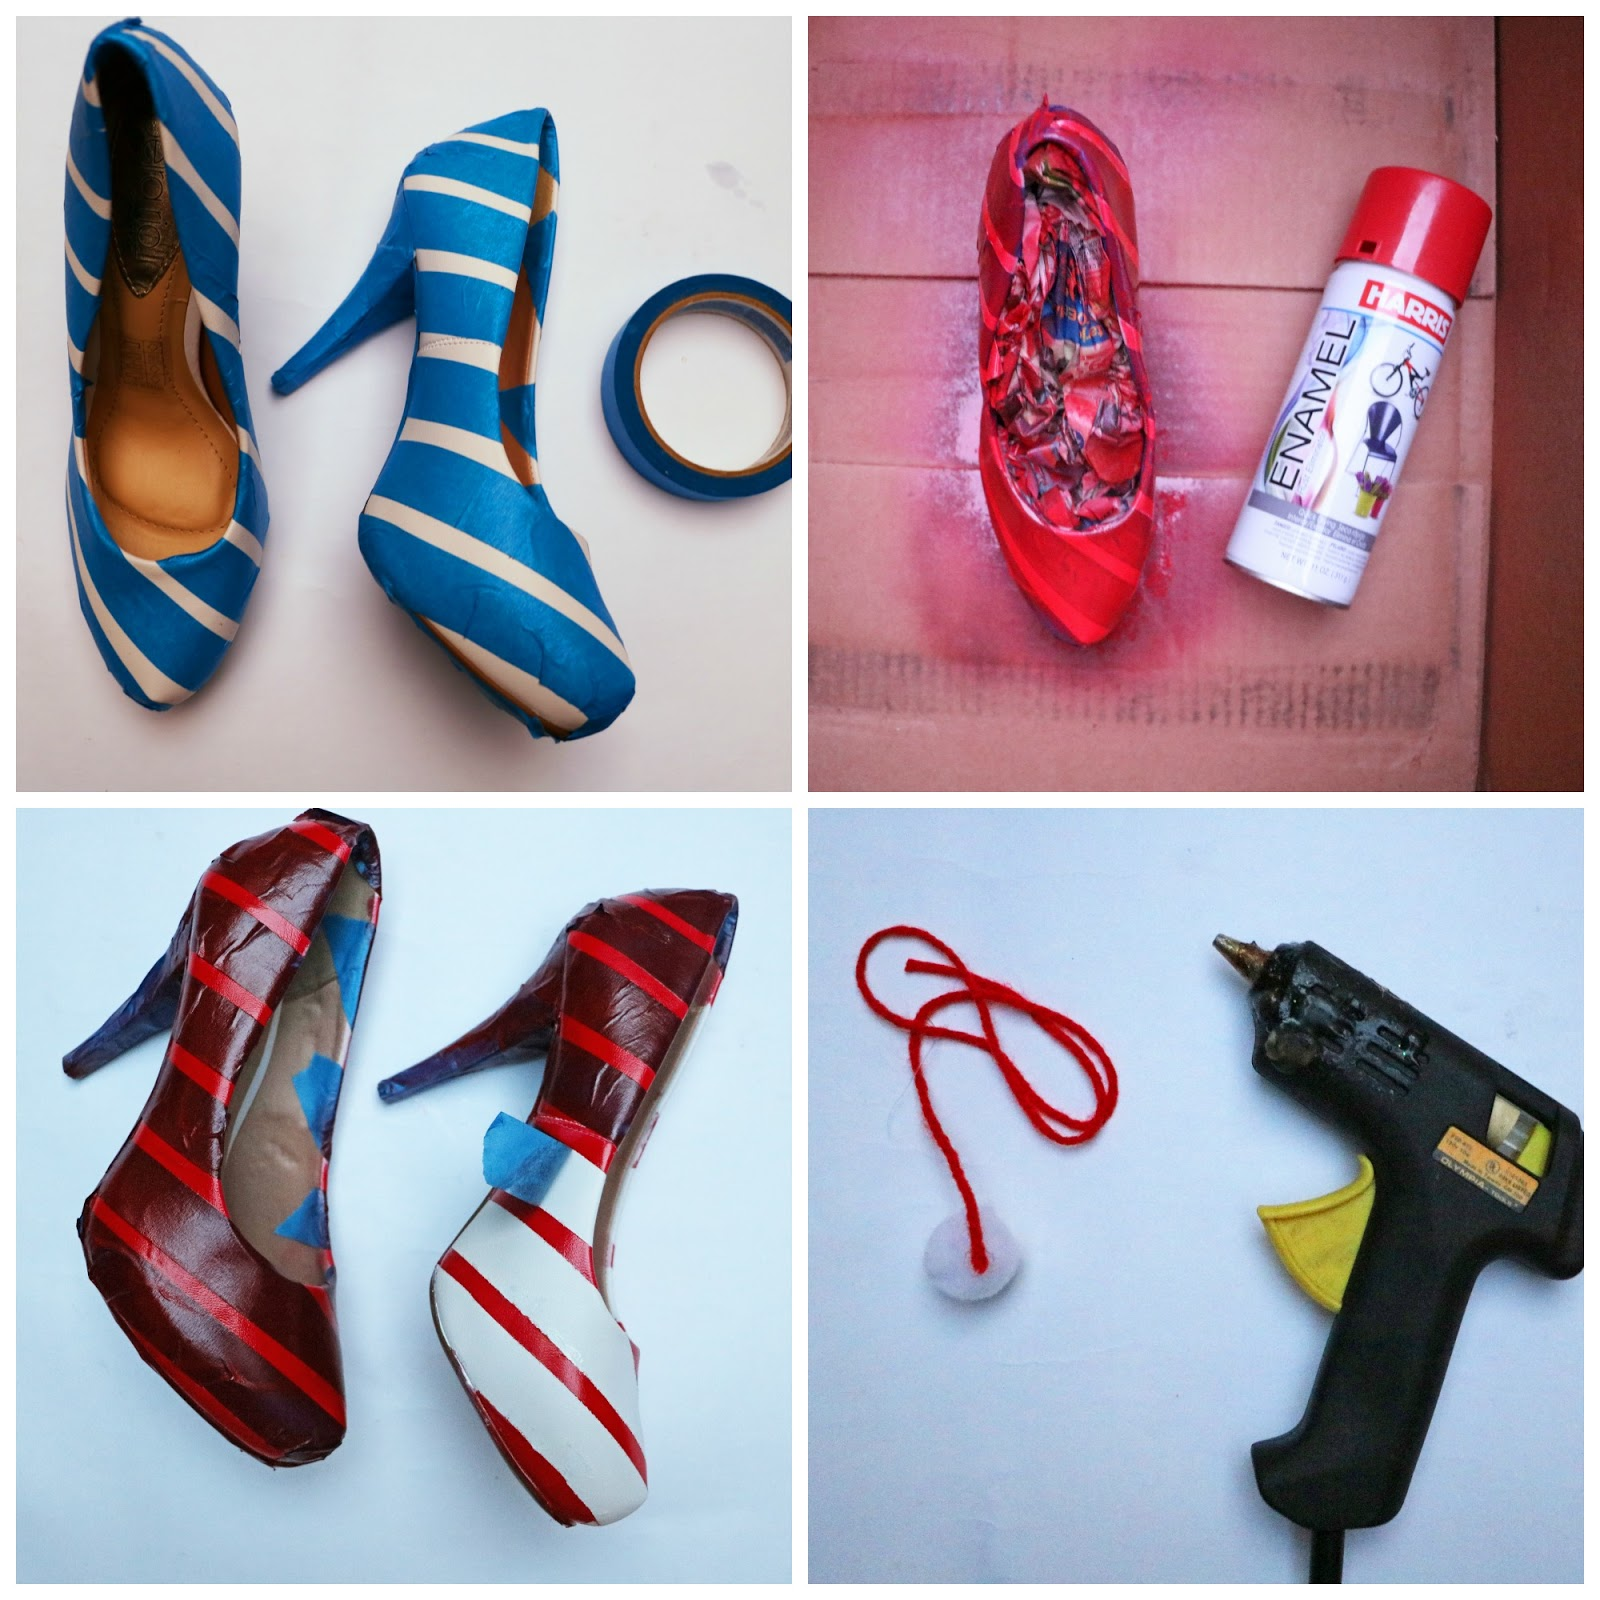 Step by step tutorial on how to make Peppermint inspired Christmas heels!